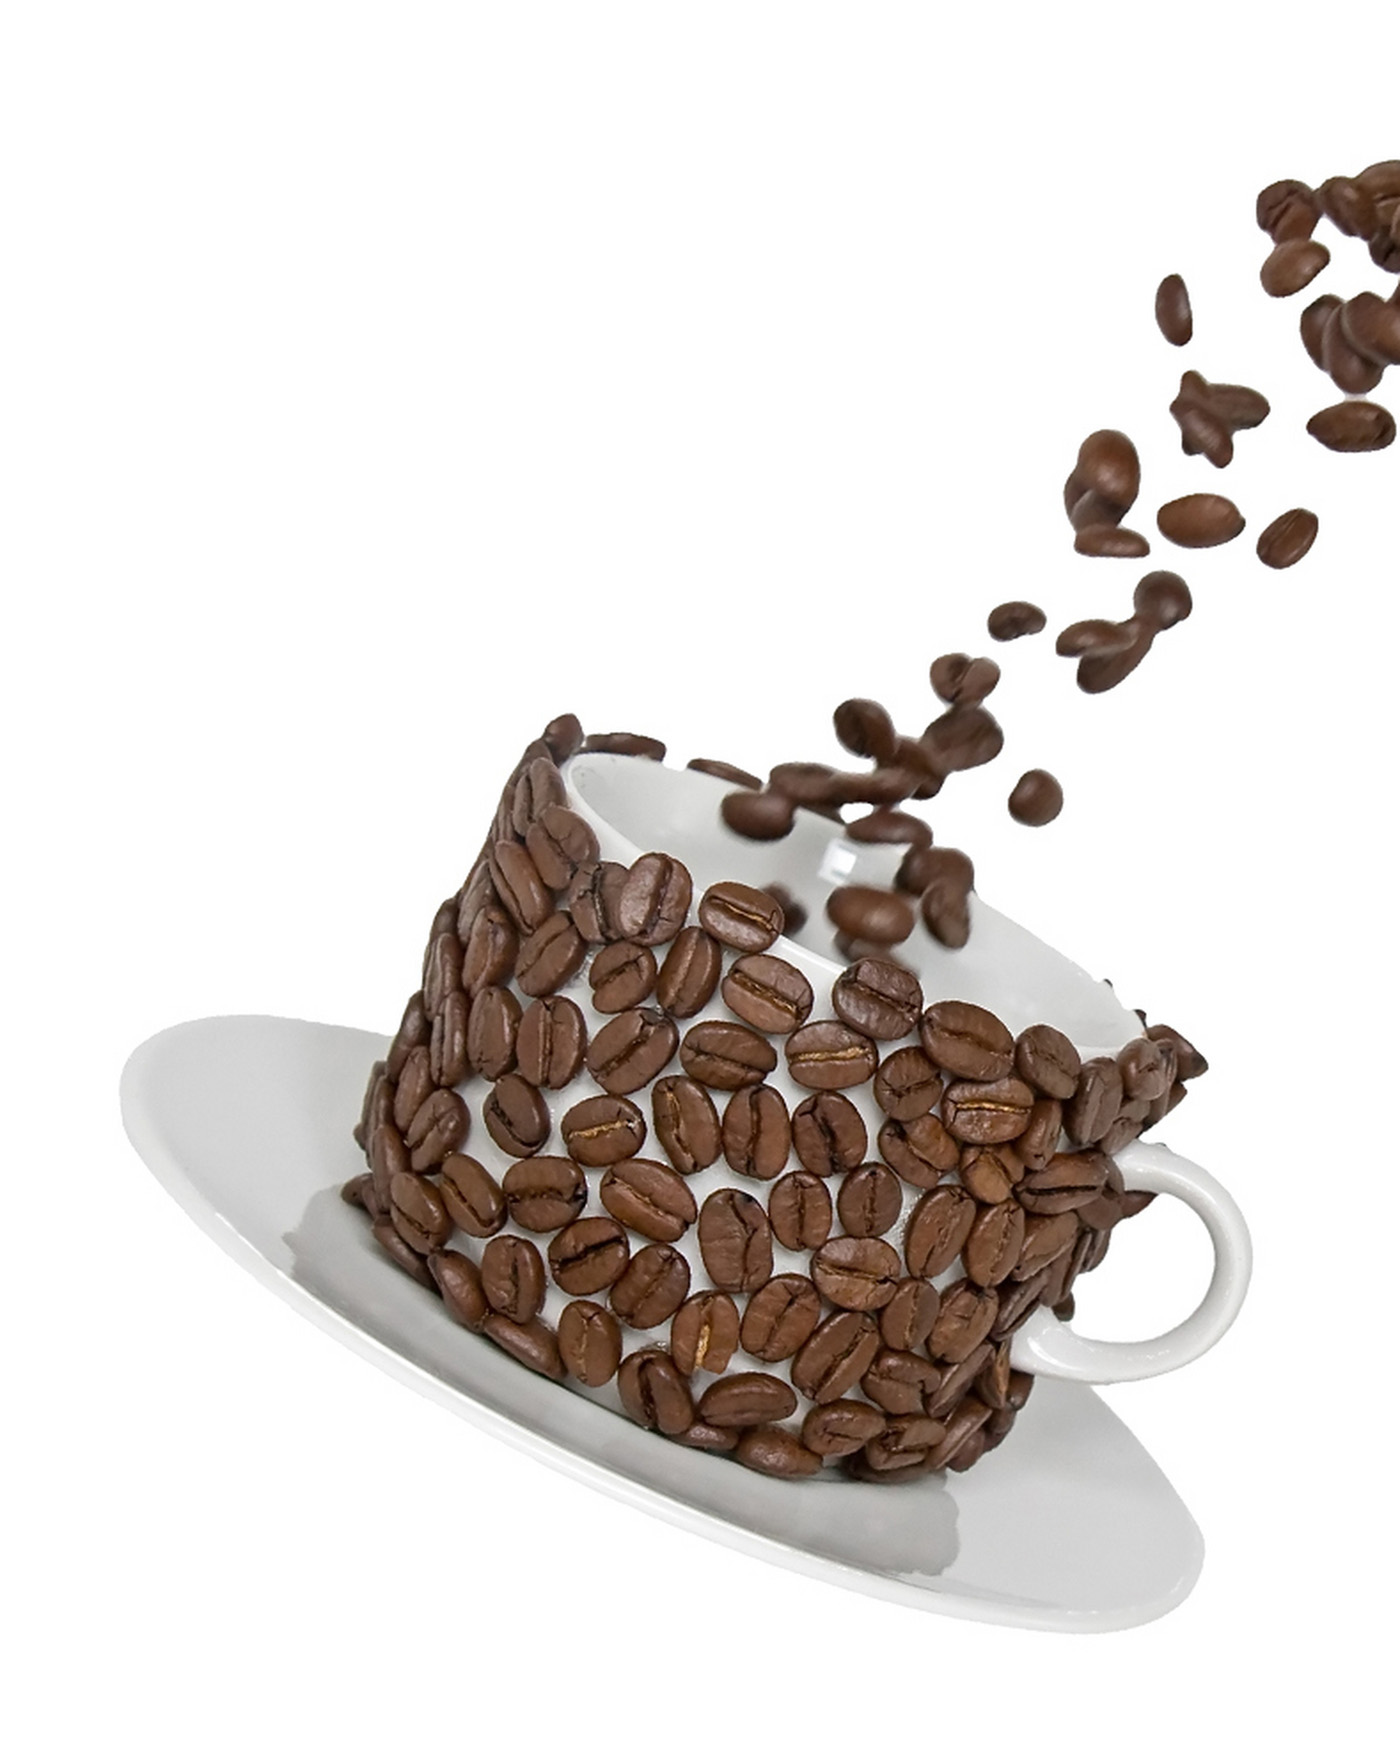 Coffee and coffee beans 17919